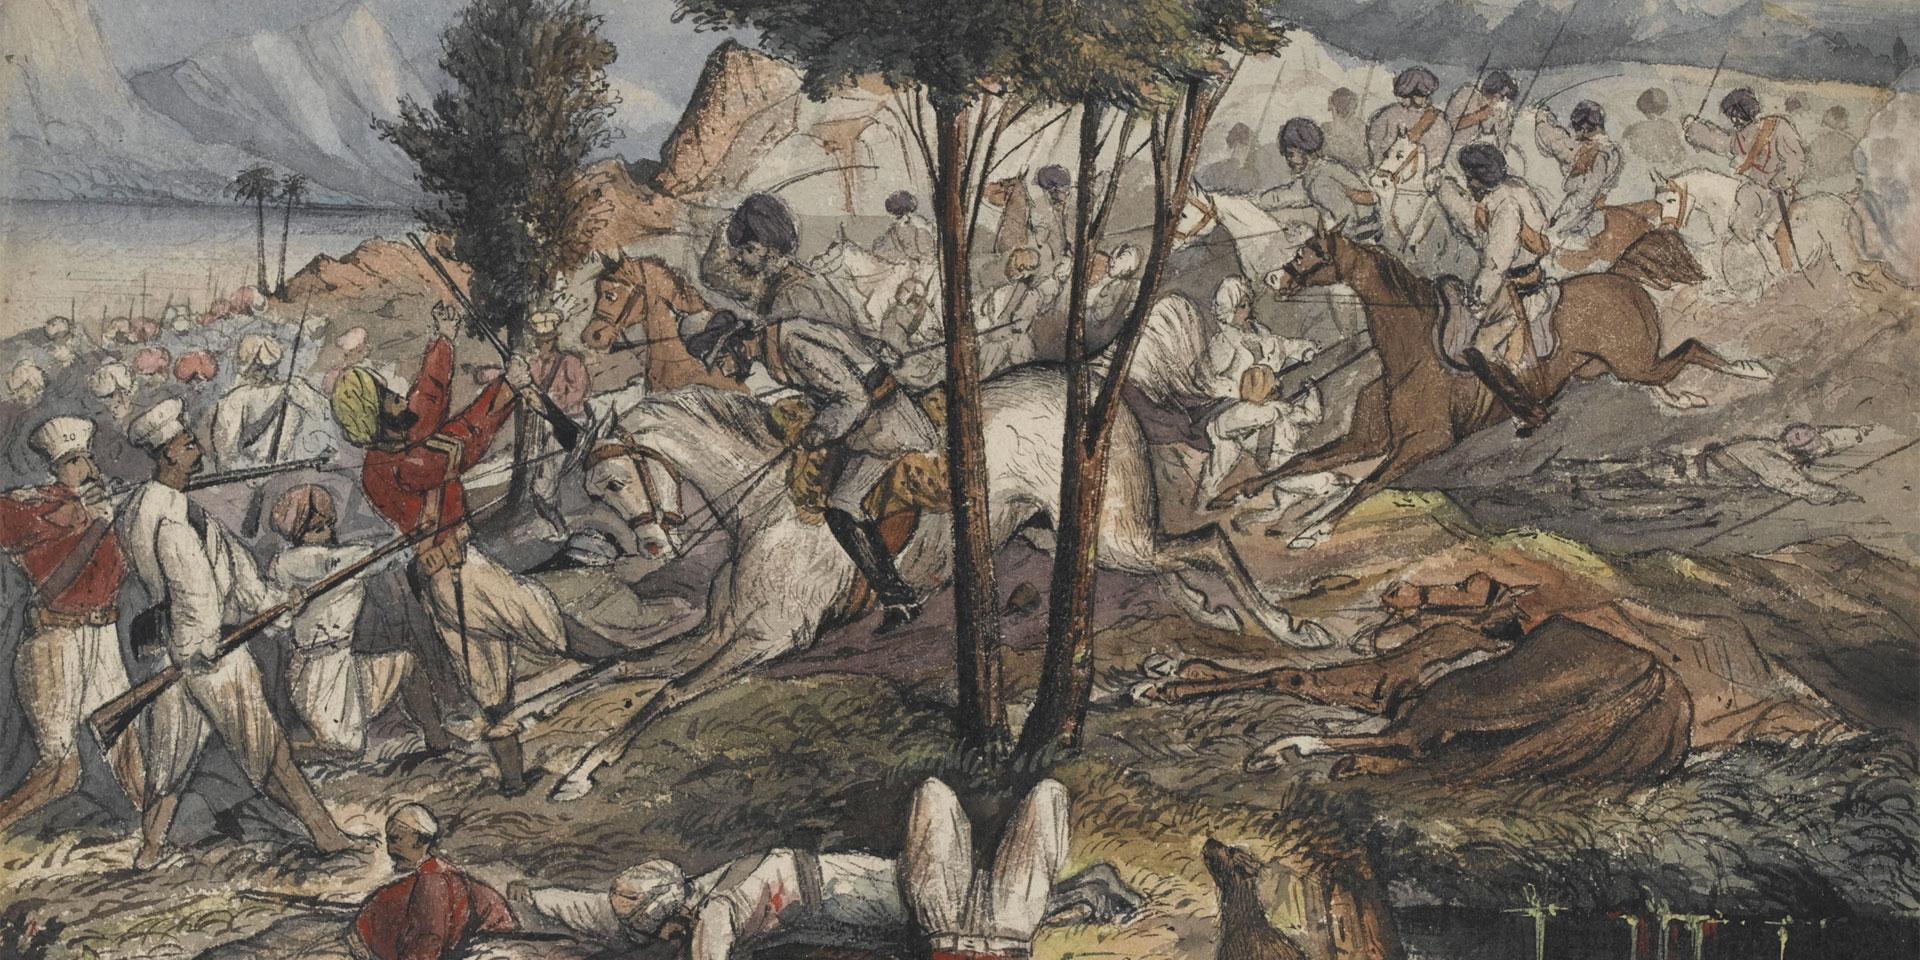 Mayne's Horse attacking mutineers in Gwalior, 1858